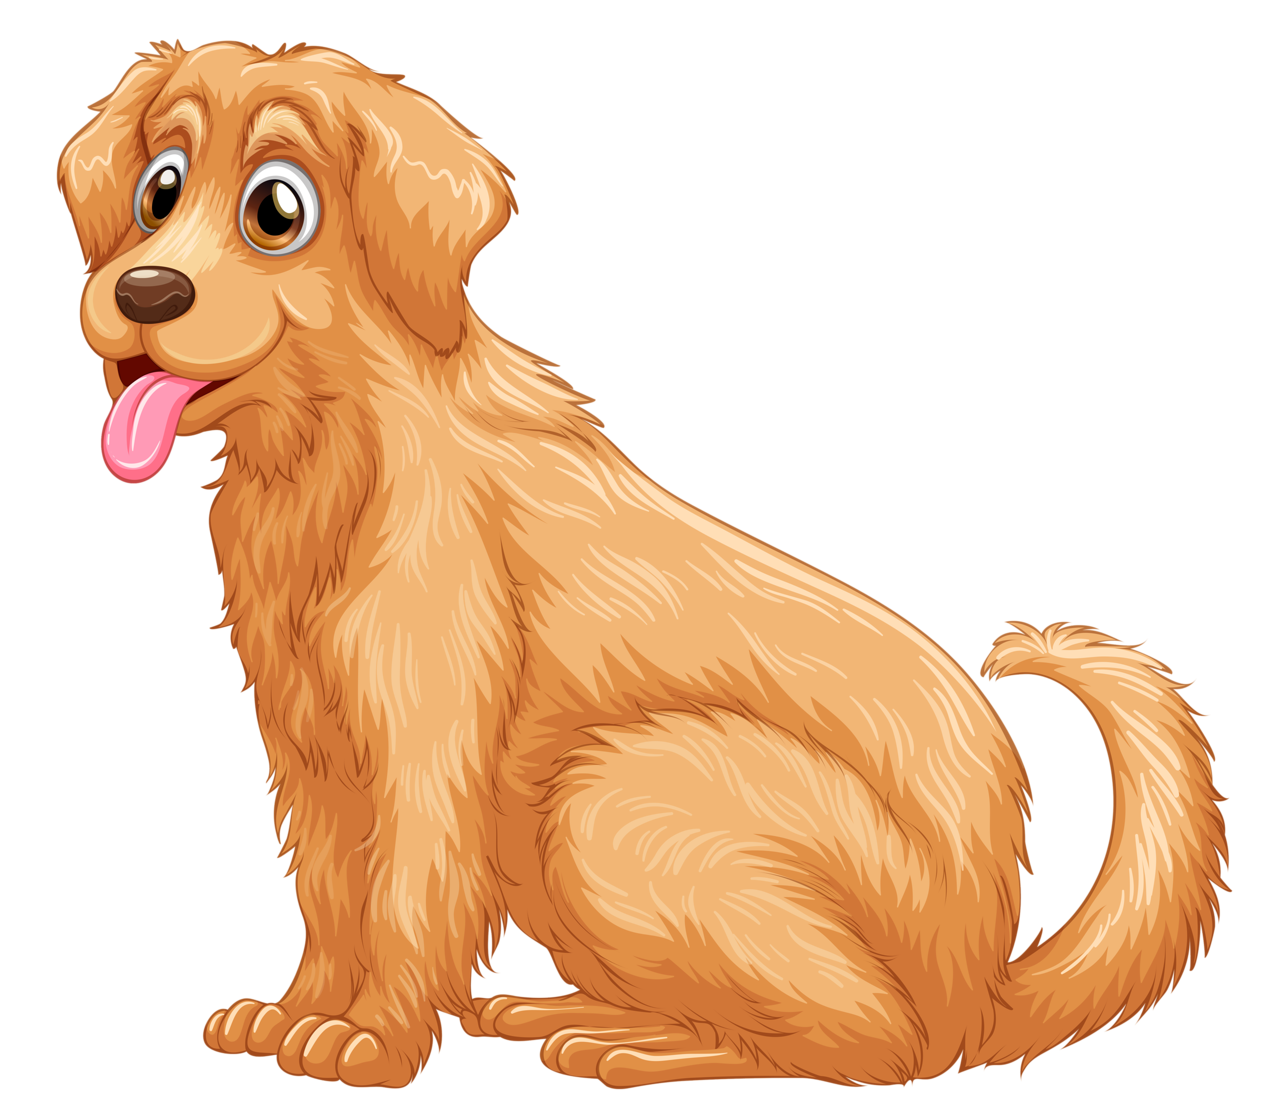 image freeuse download  collection of high. Golden retriever clipart transparent